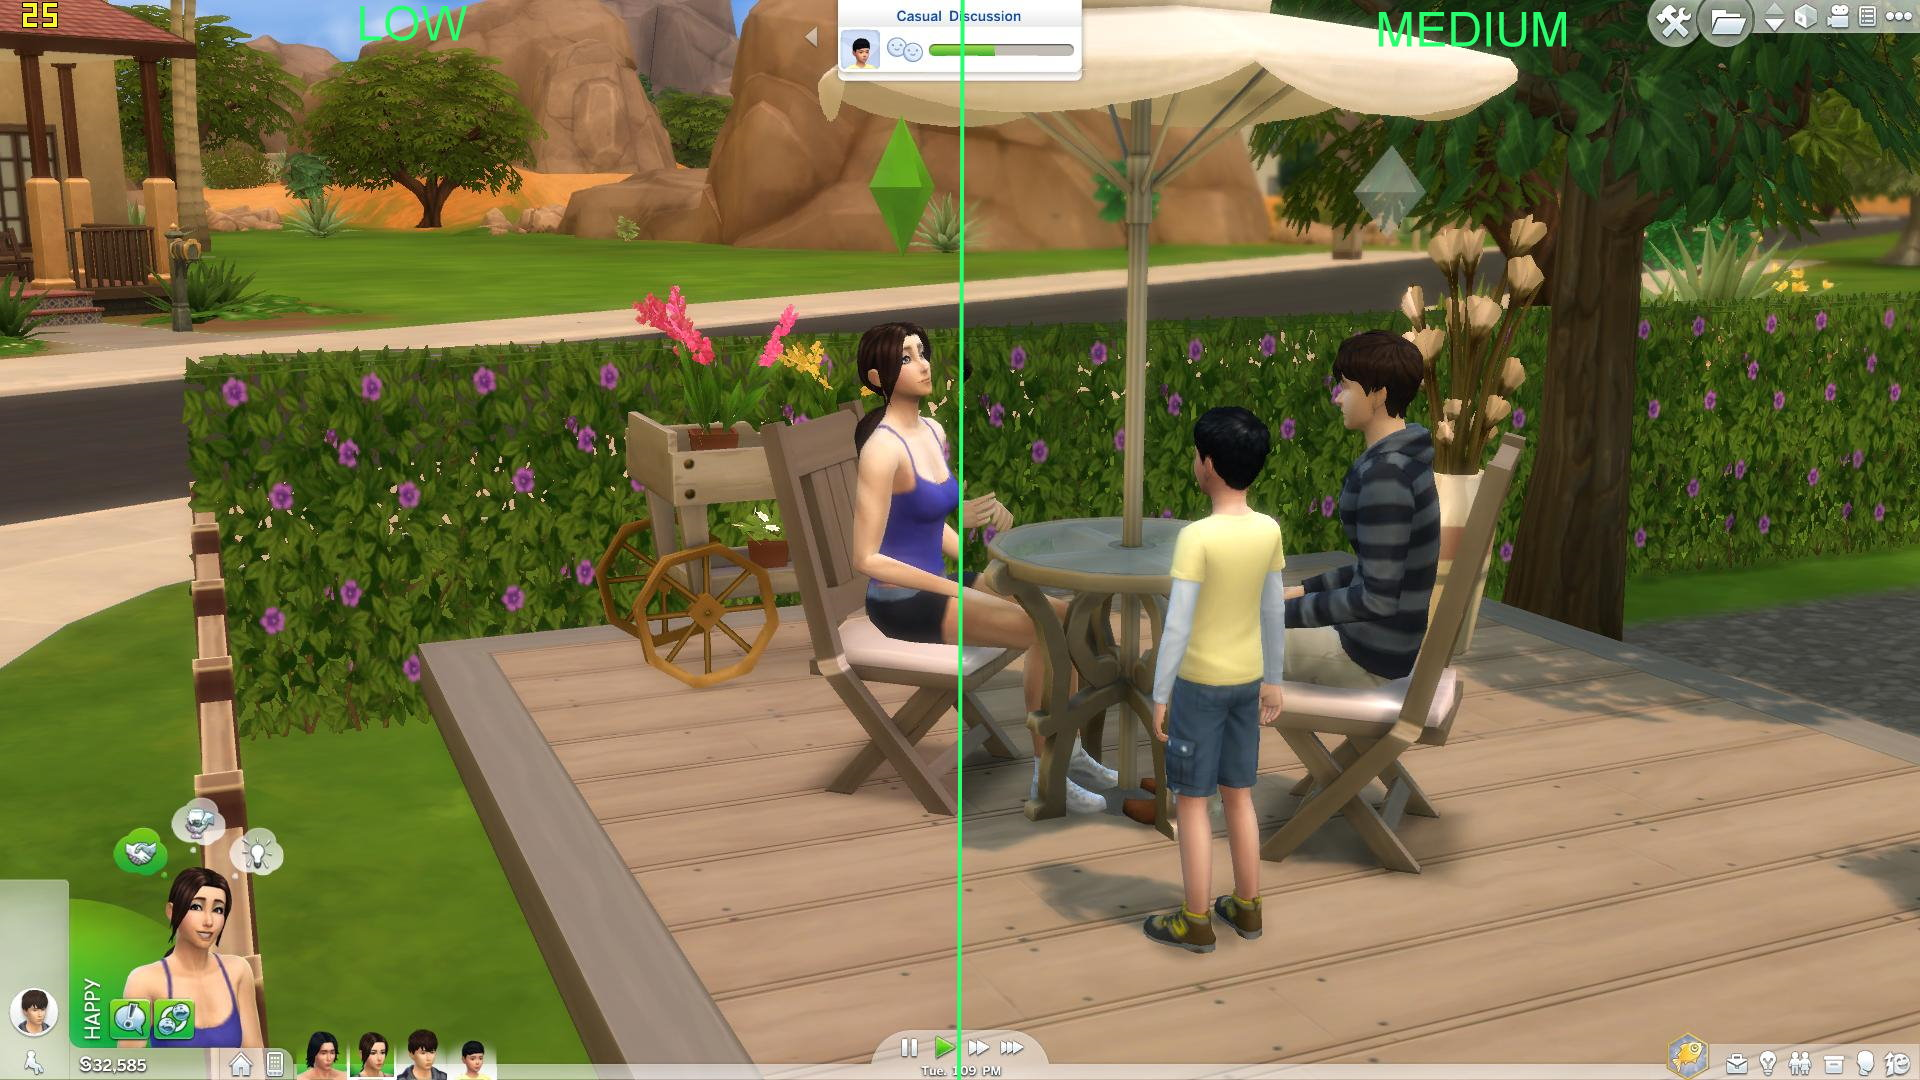 mod the sims ts4 graphics setting details